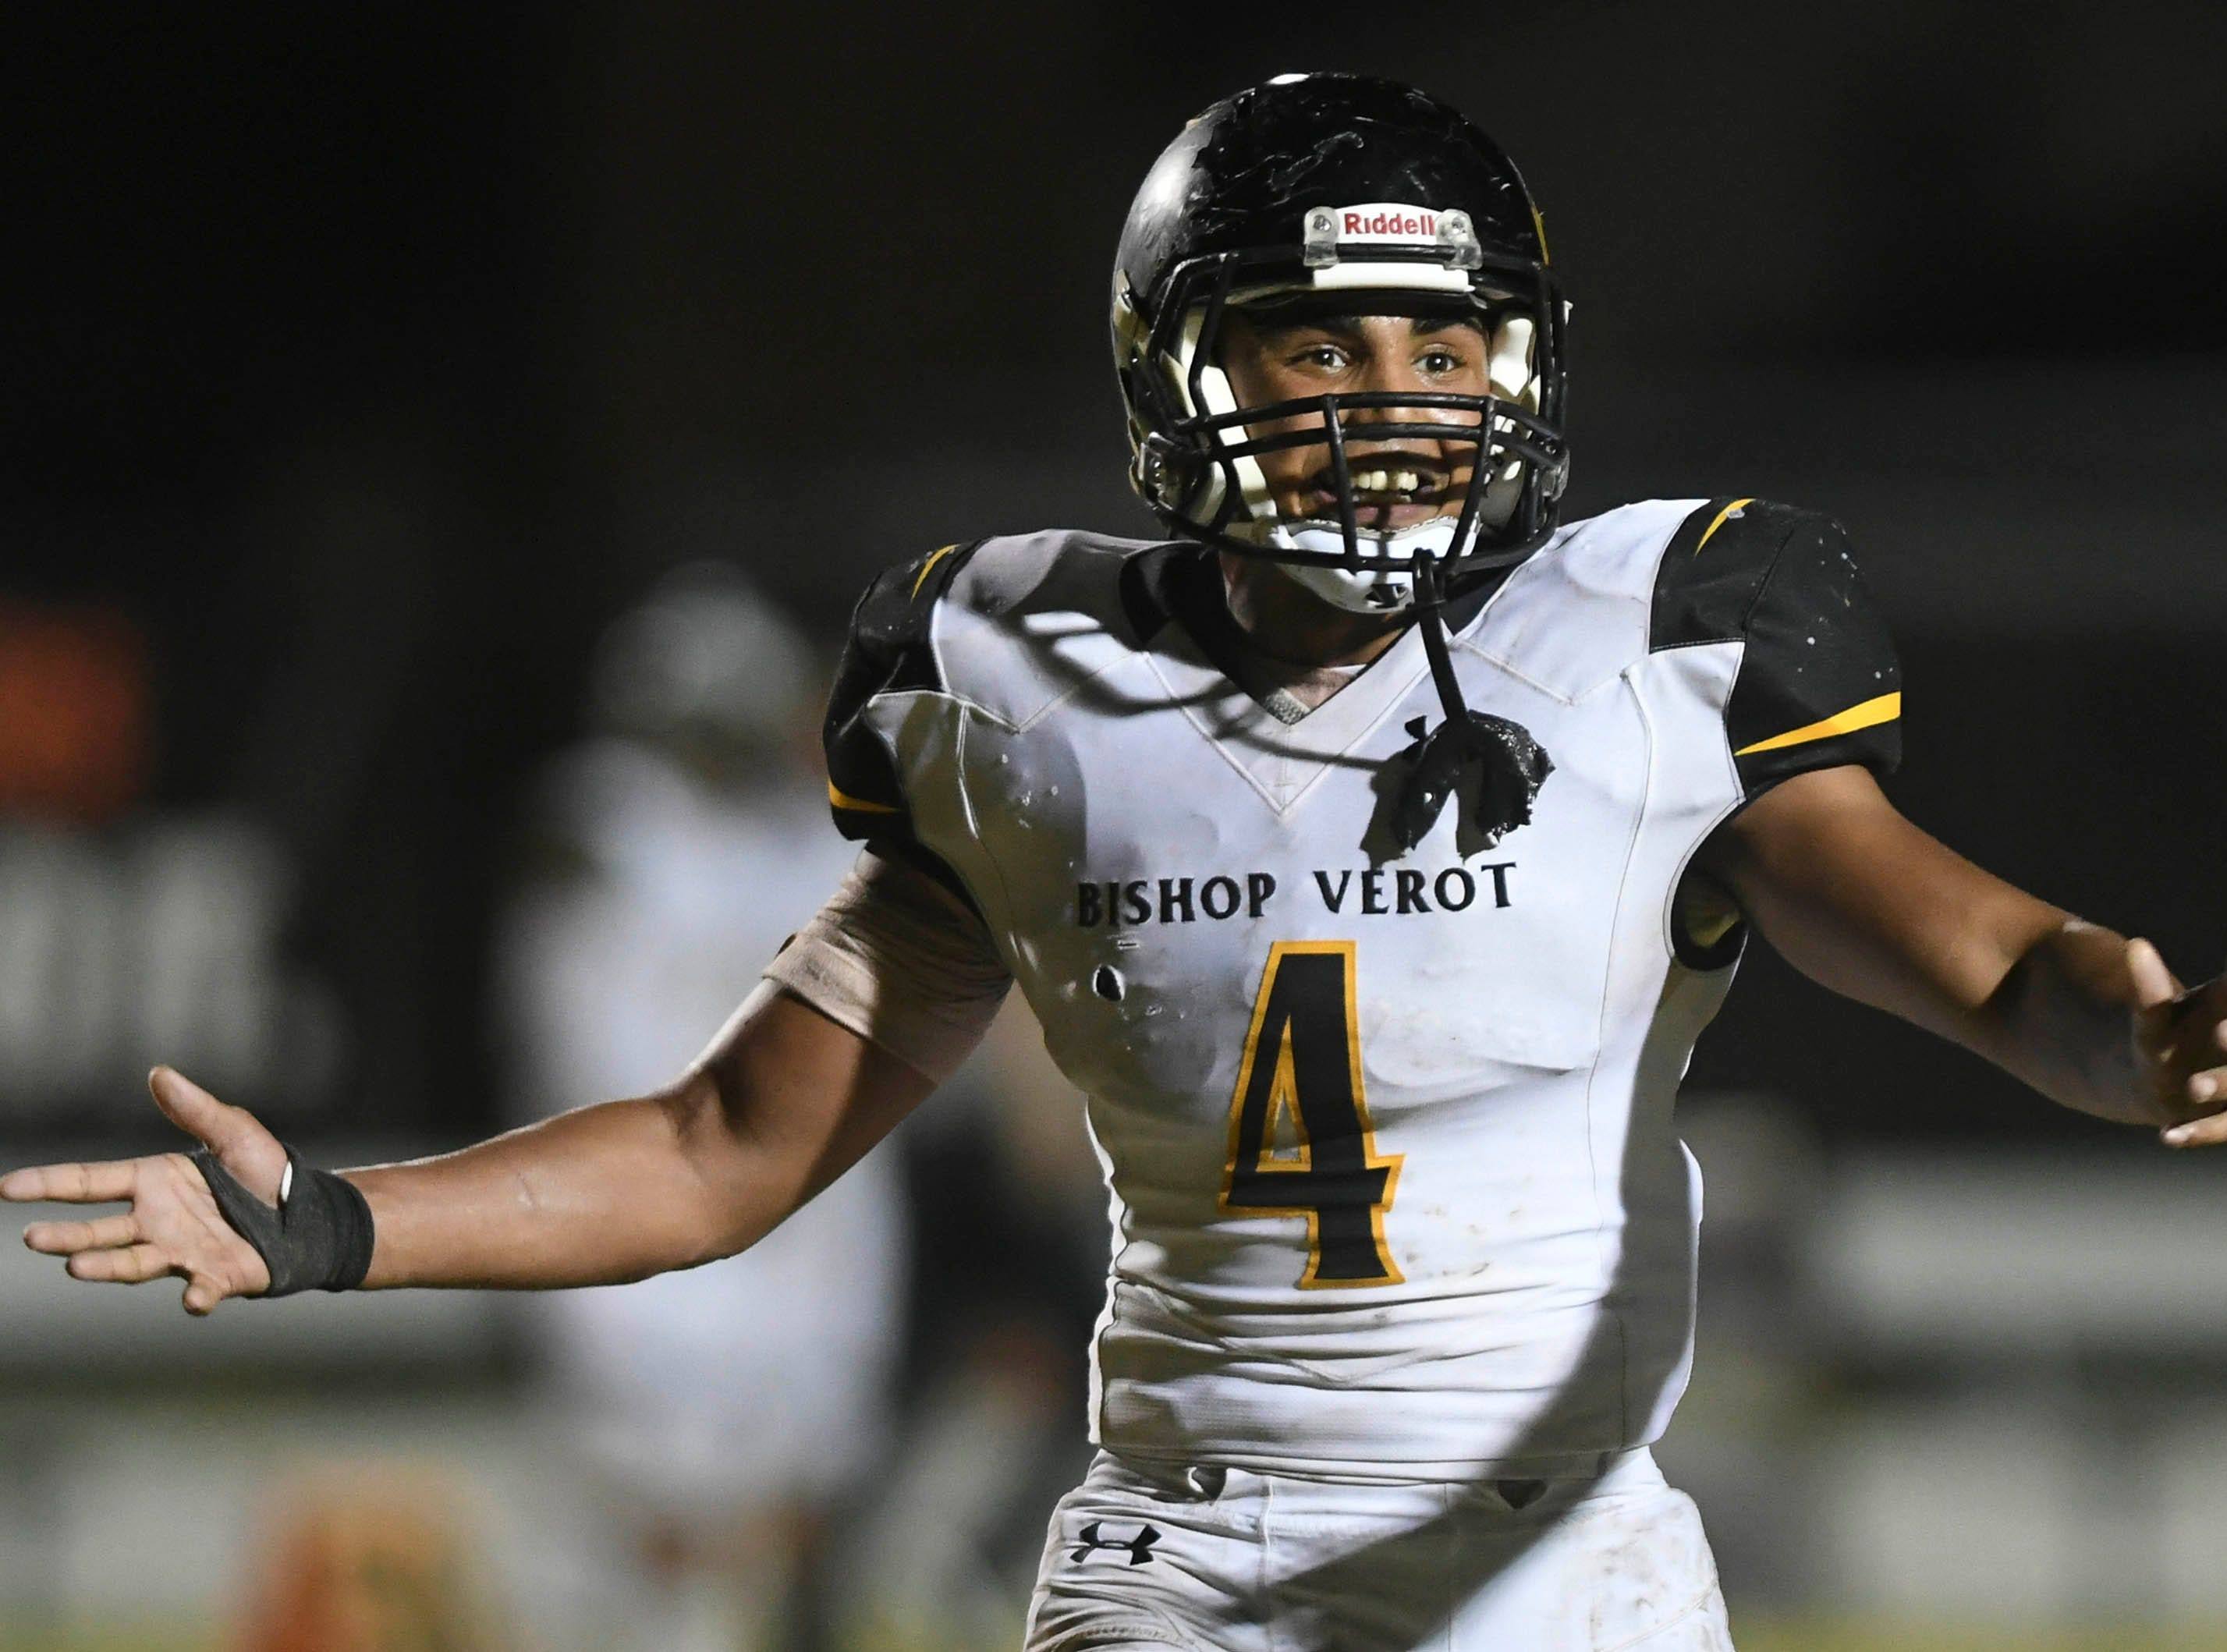 Kai Page of Bishop Verot protests a call during Friday's game against Cocoa at Blake Stadium.